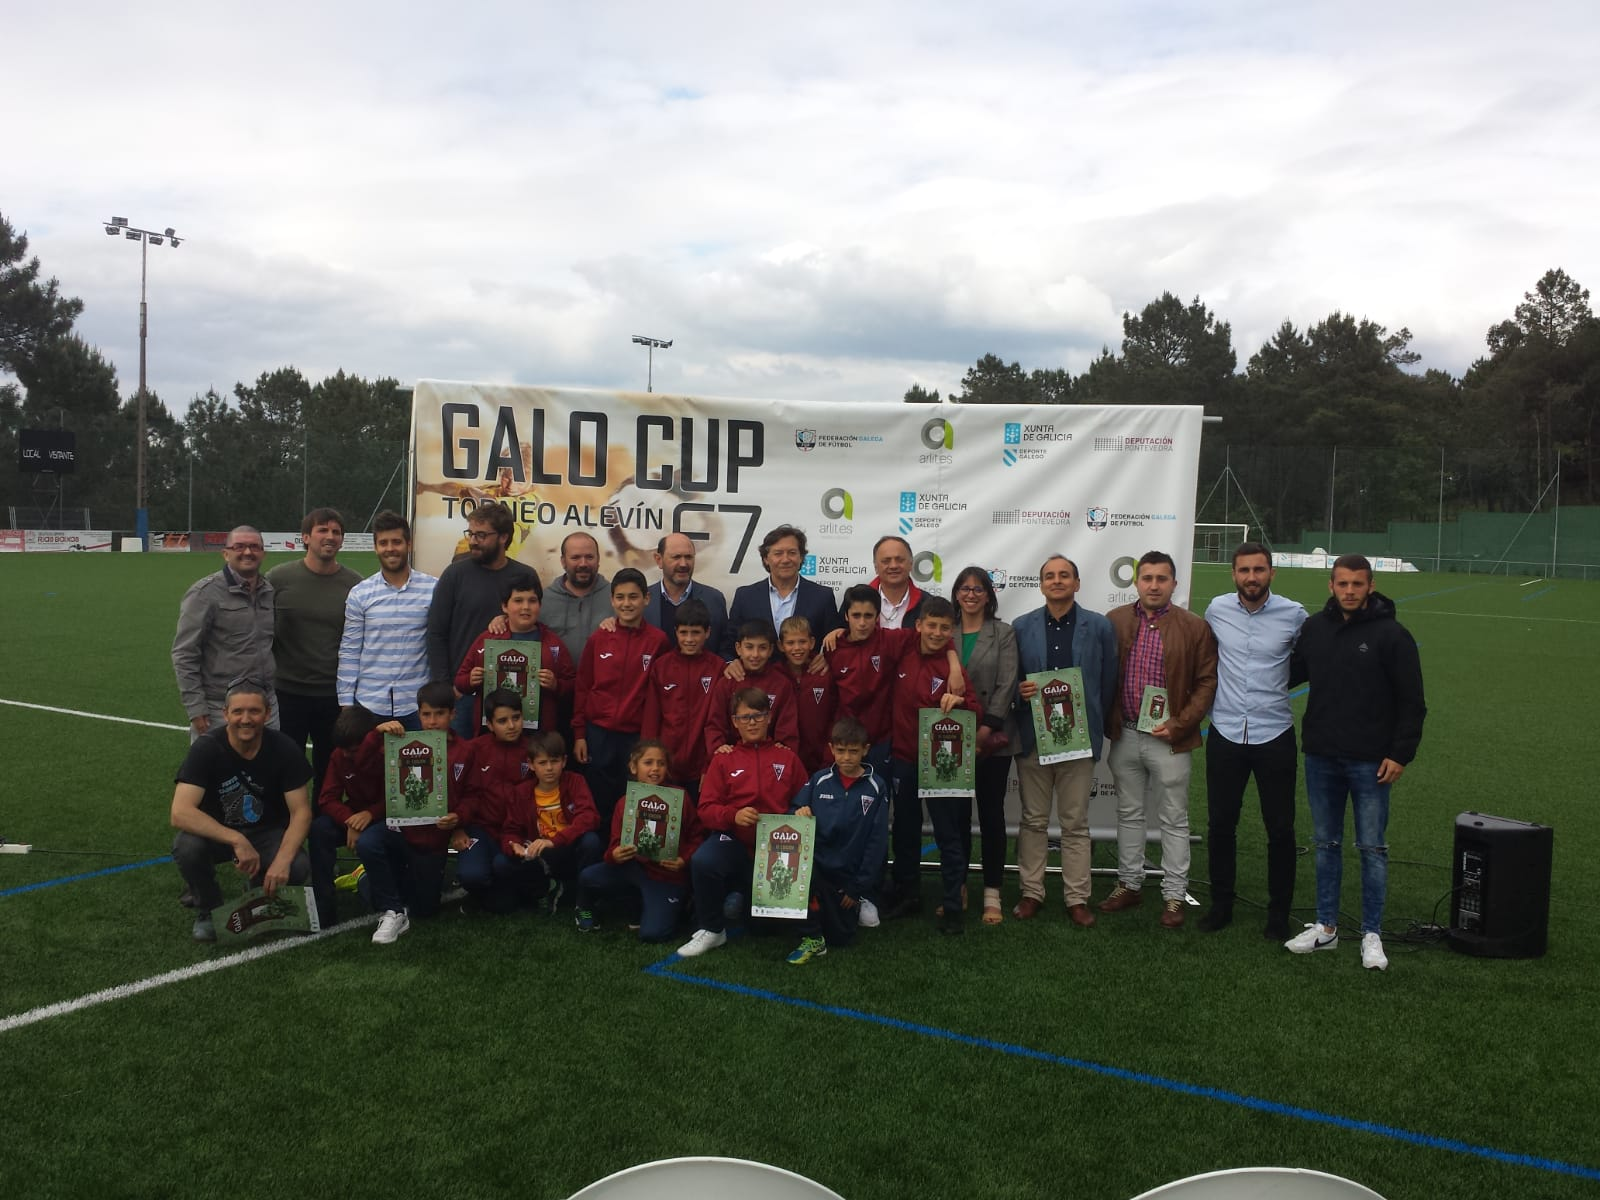 Galo Cup